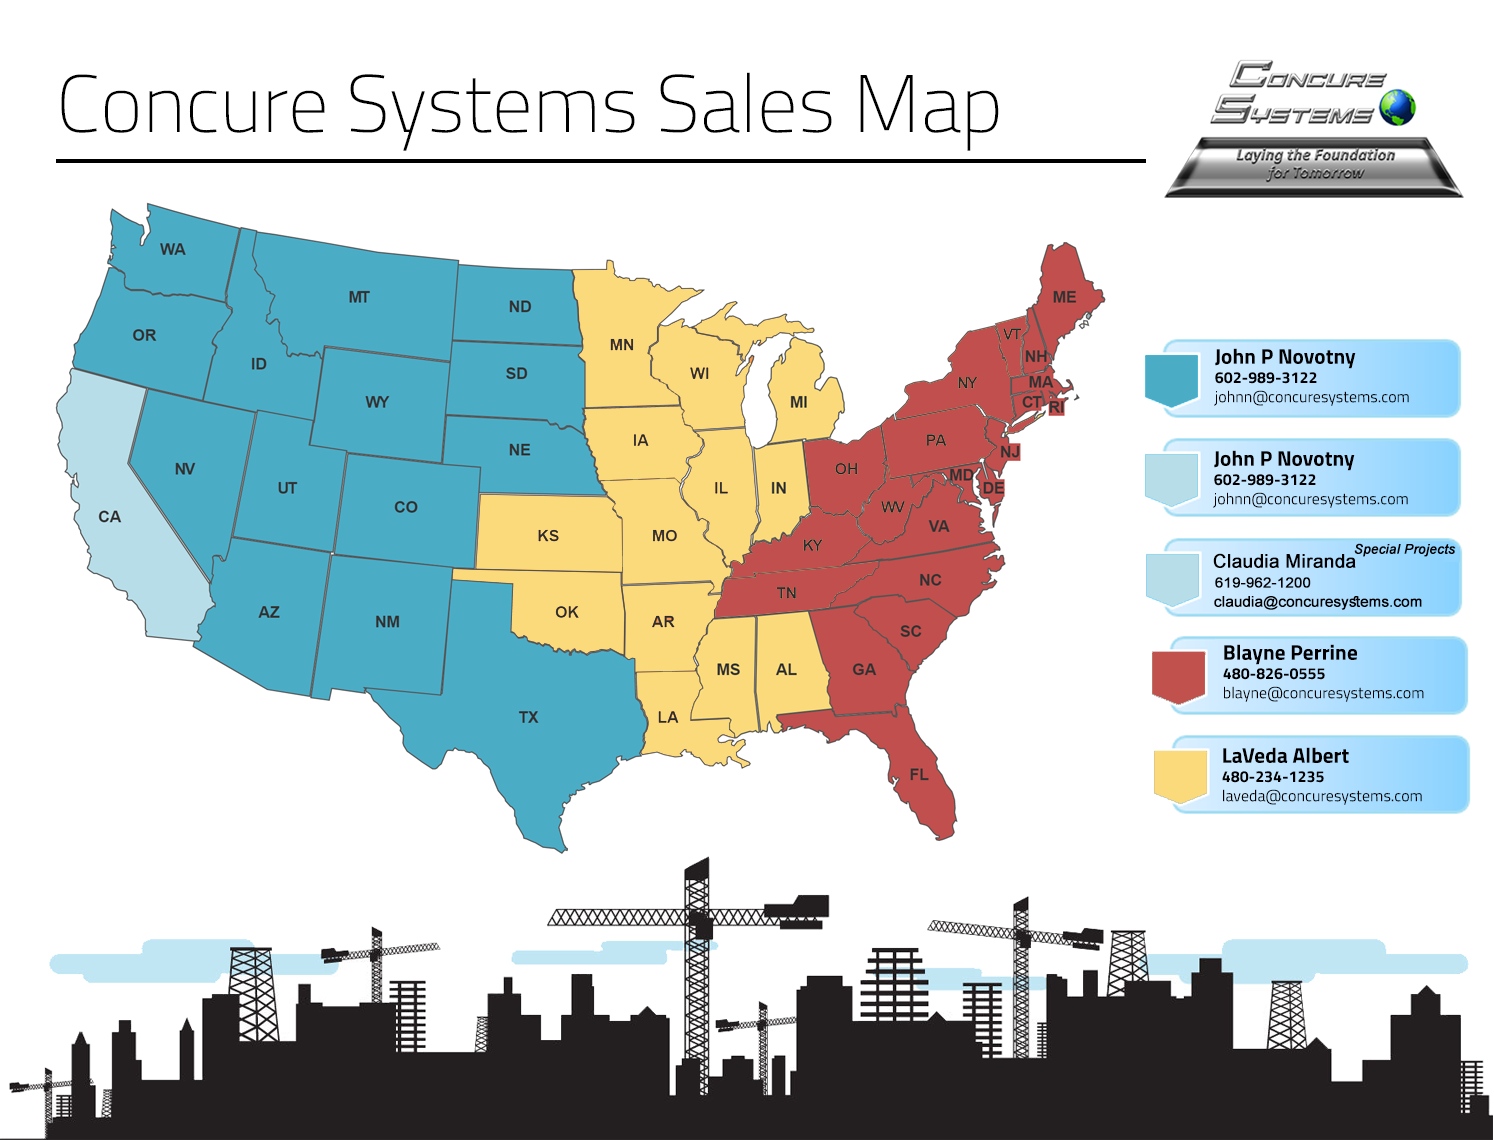 Concure Systems Sales Map